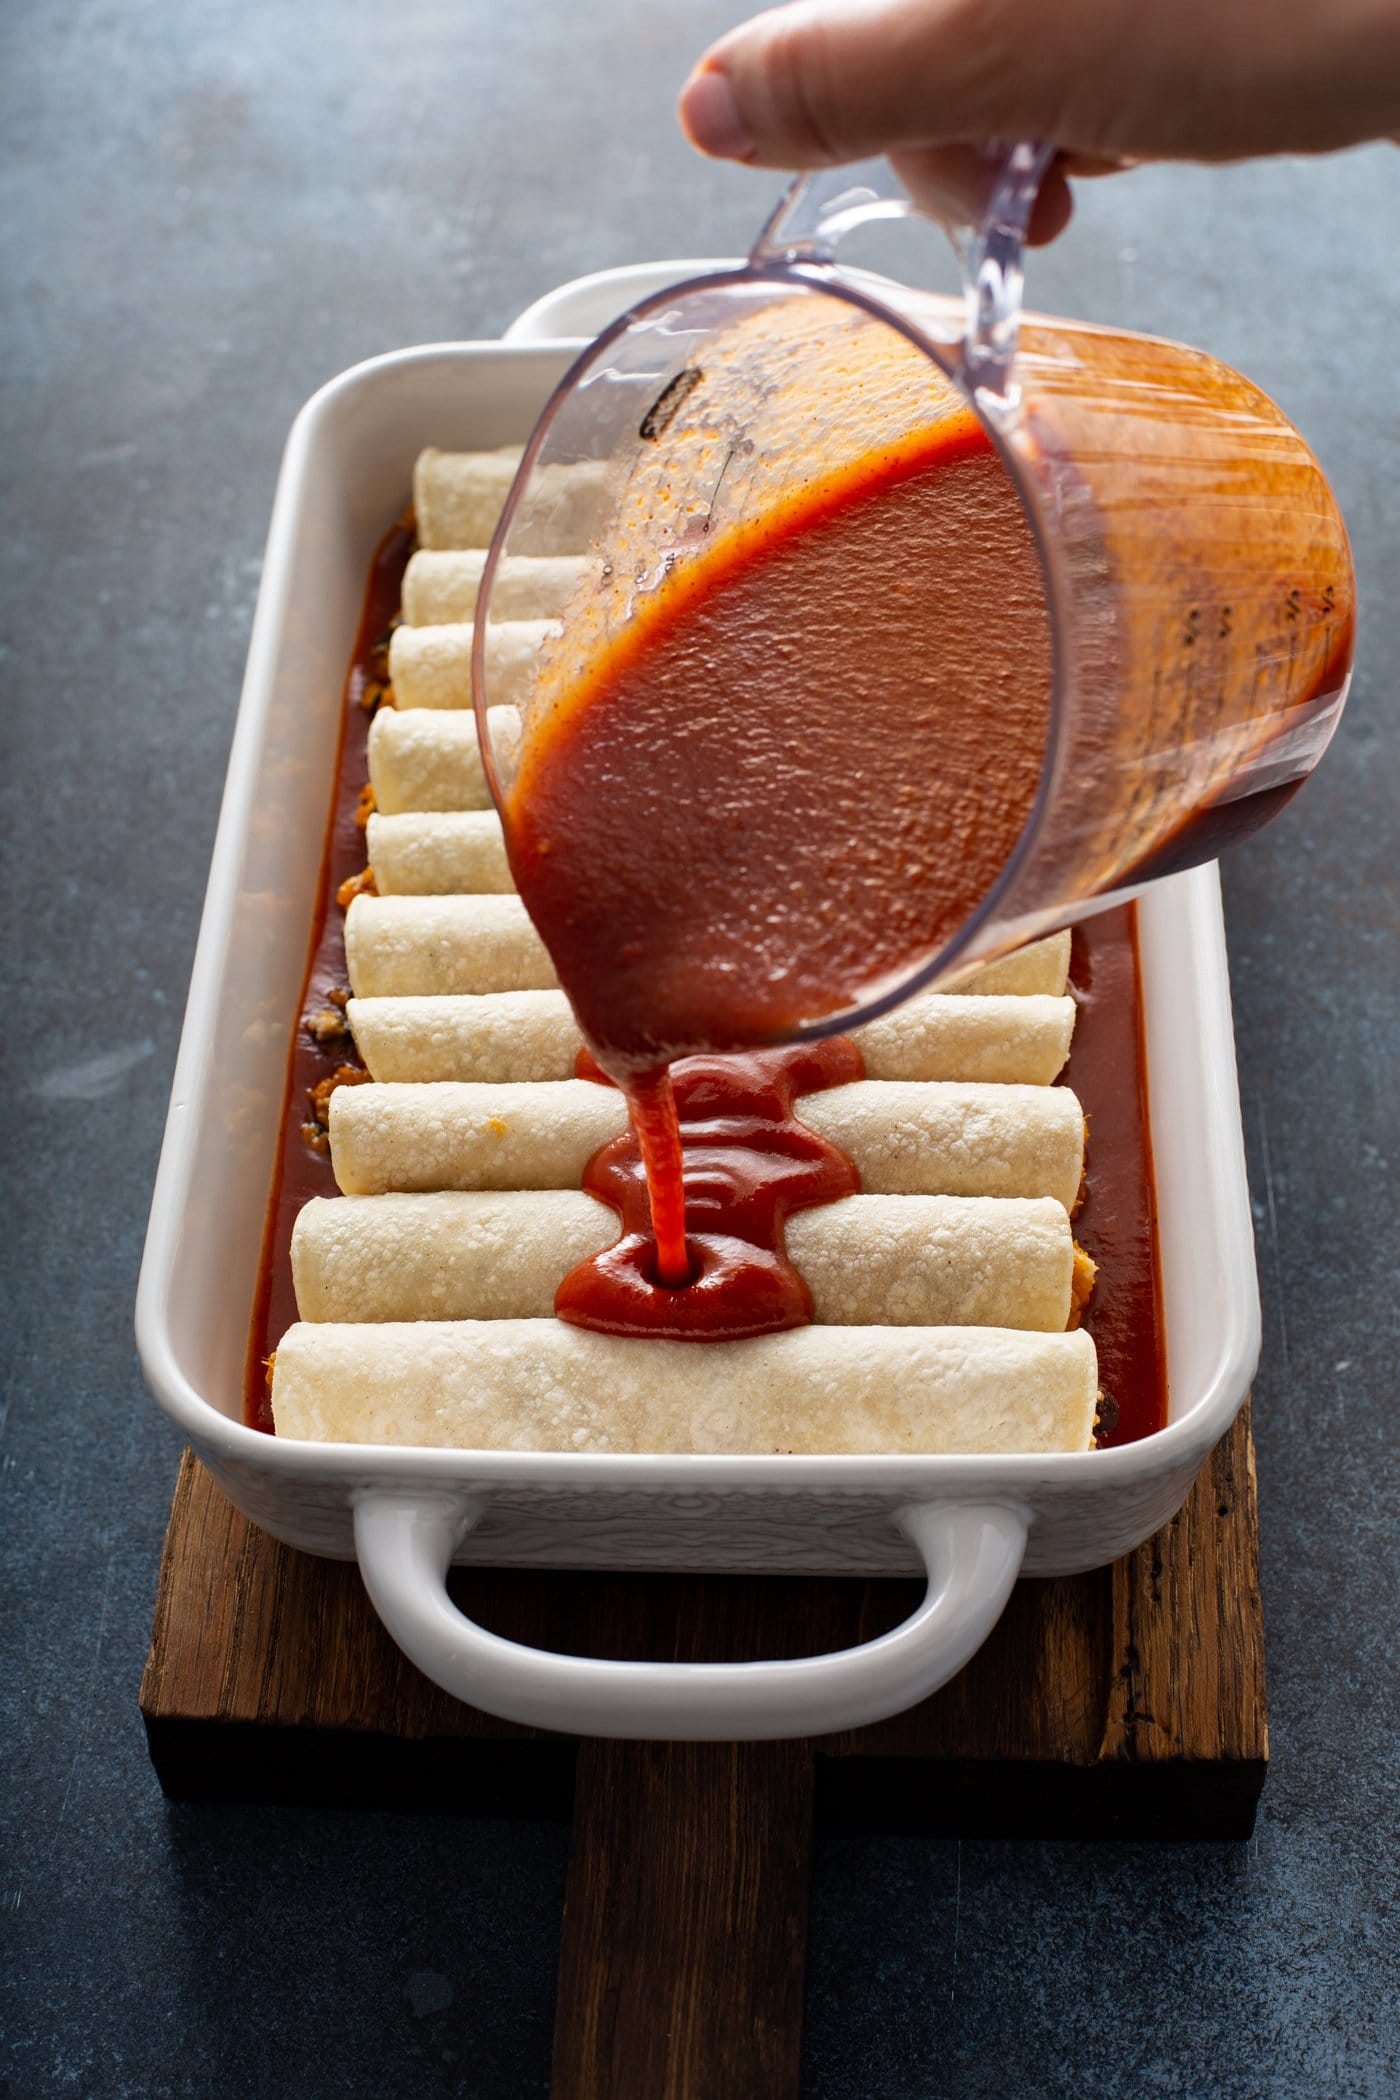 Unbaked enchiladas in a white baking dish. Red enchilada sauce is being poured from a glass measuring cup over the enchiladas.